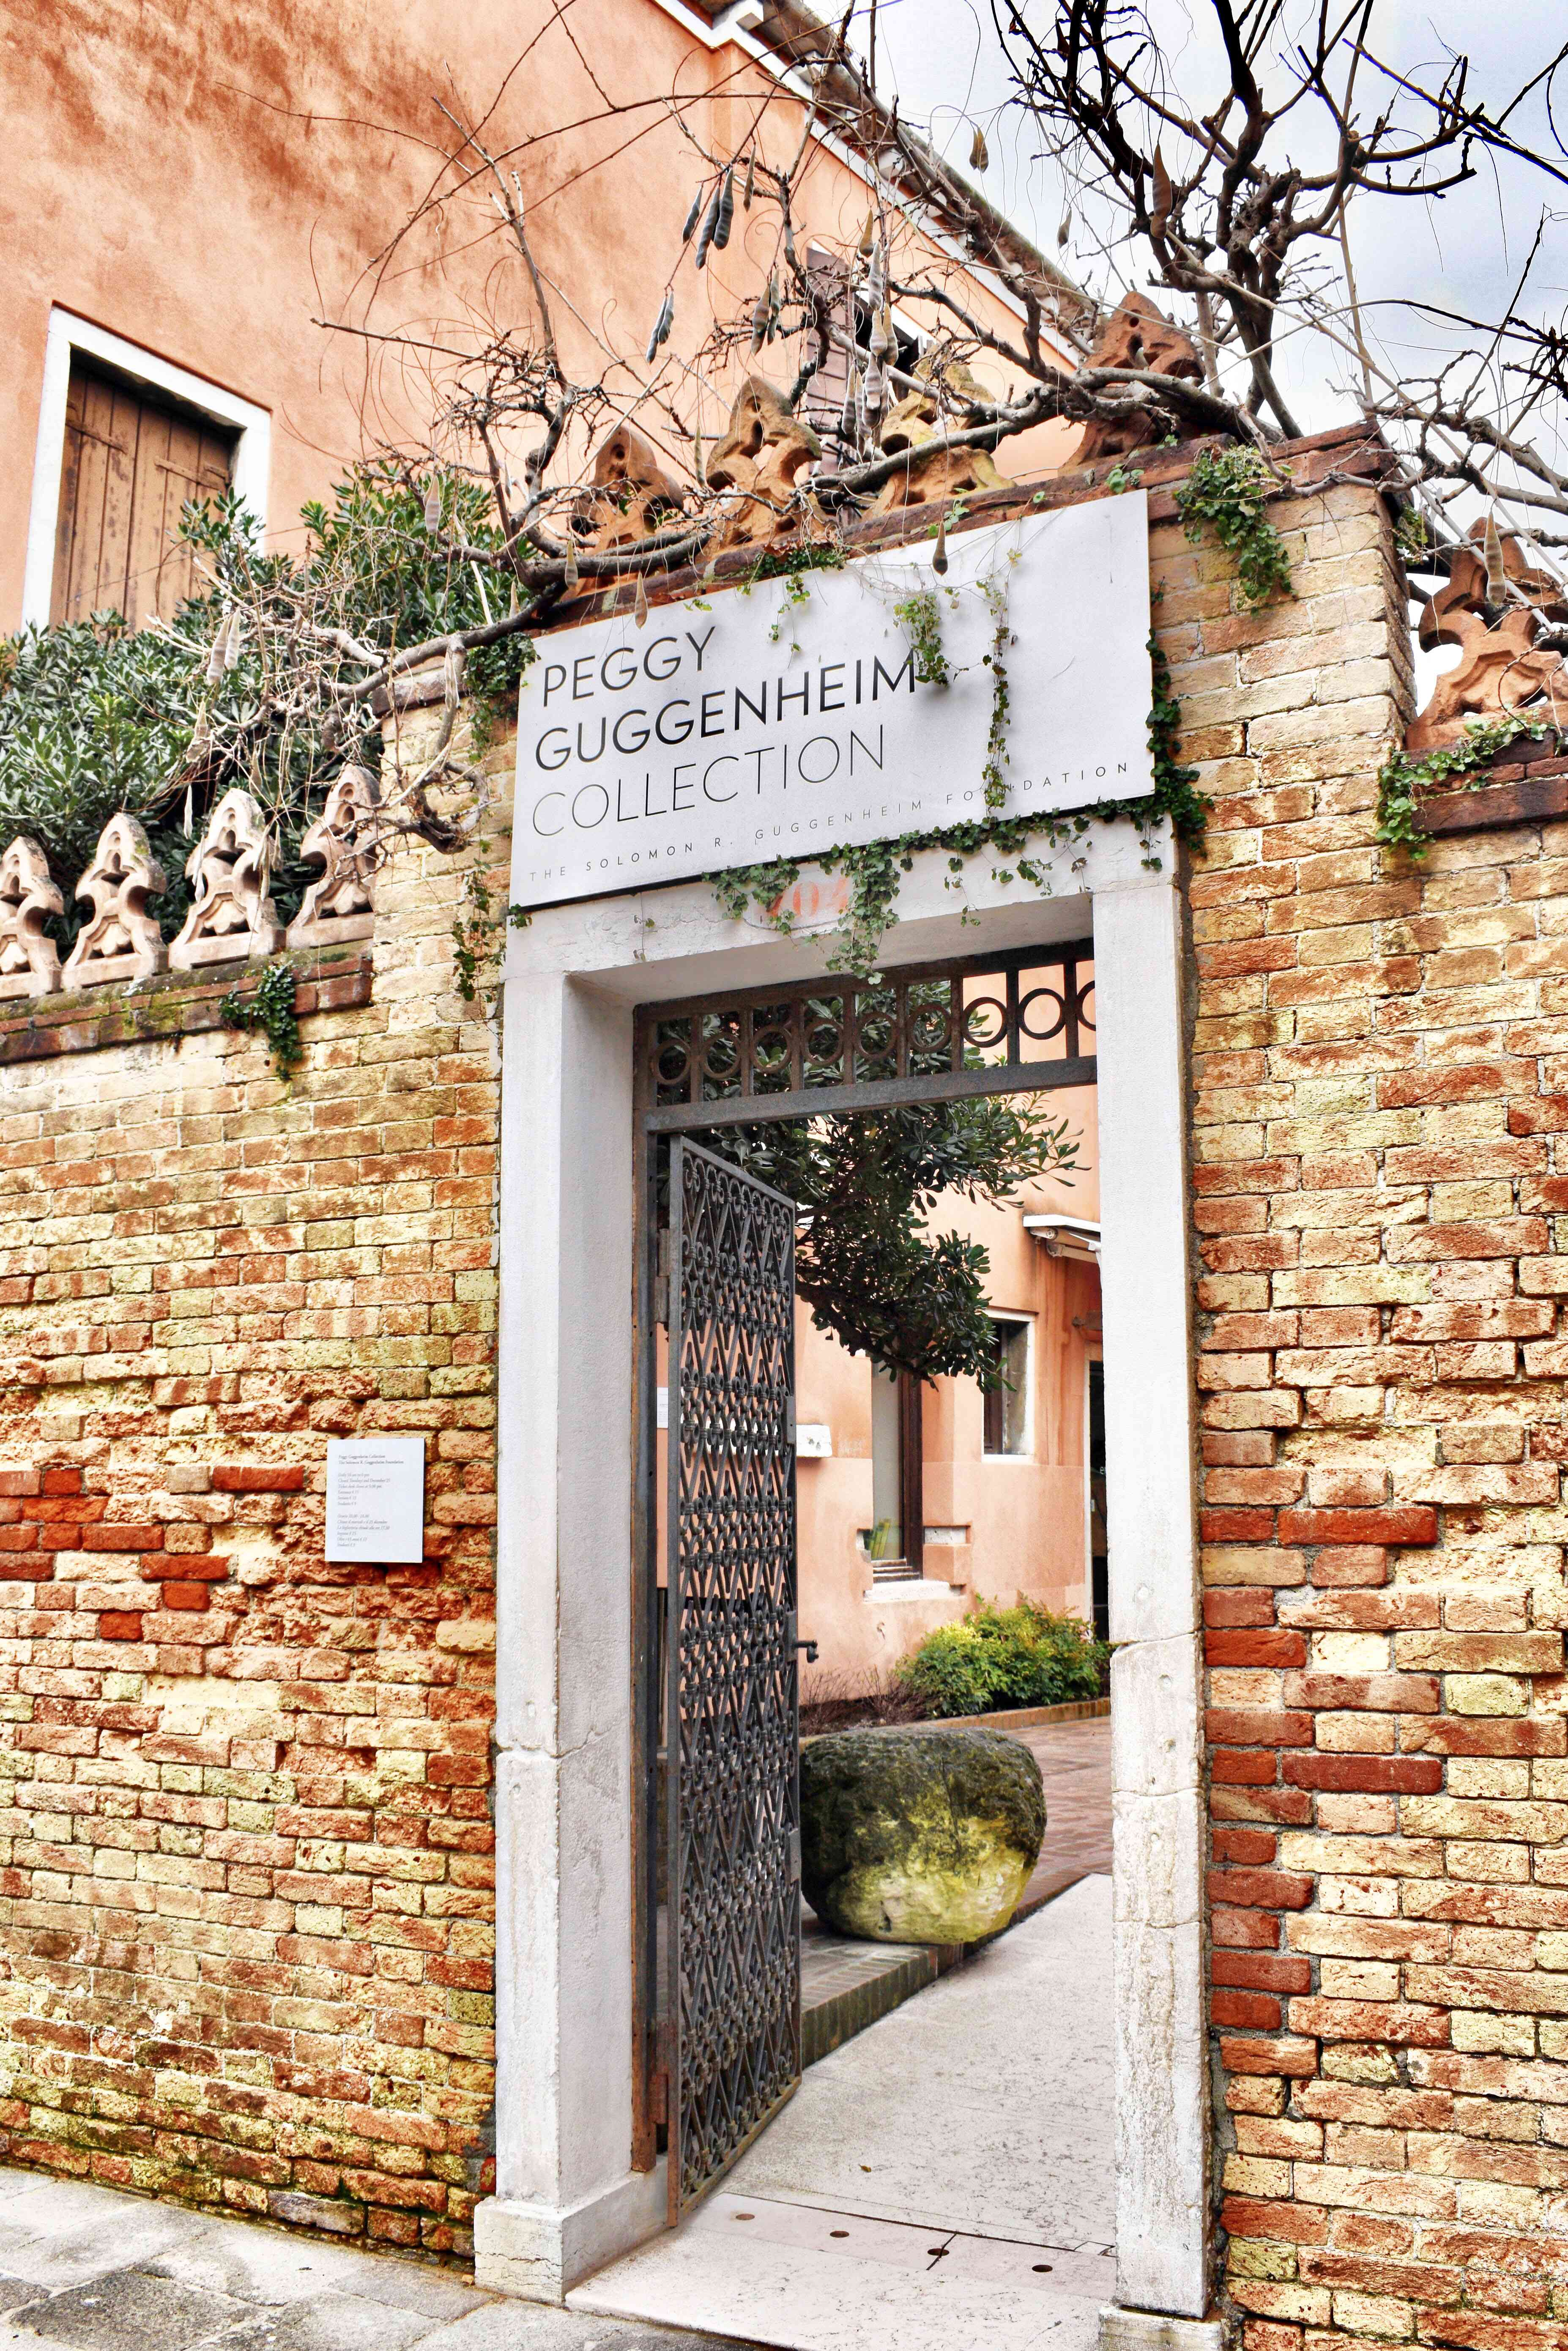 Entrance to the Peggy Guggenheim Collection